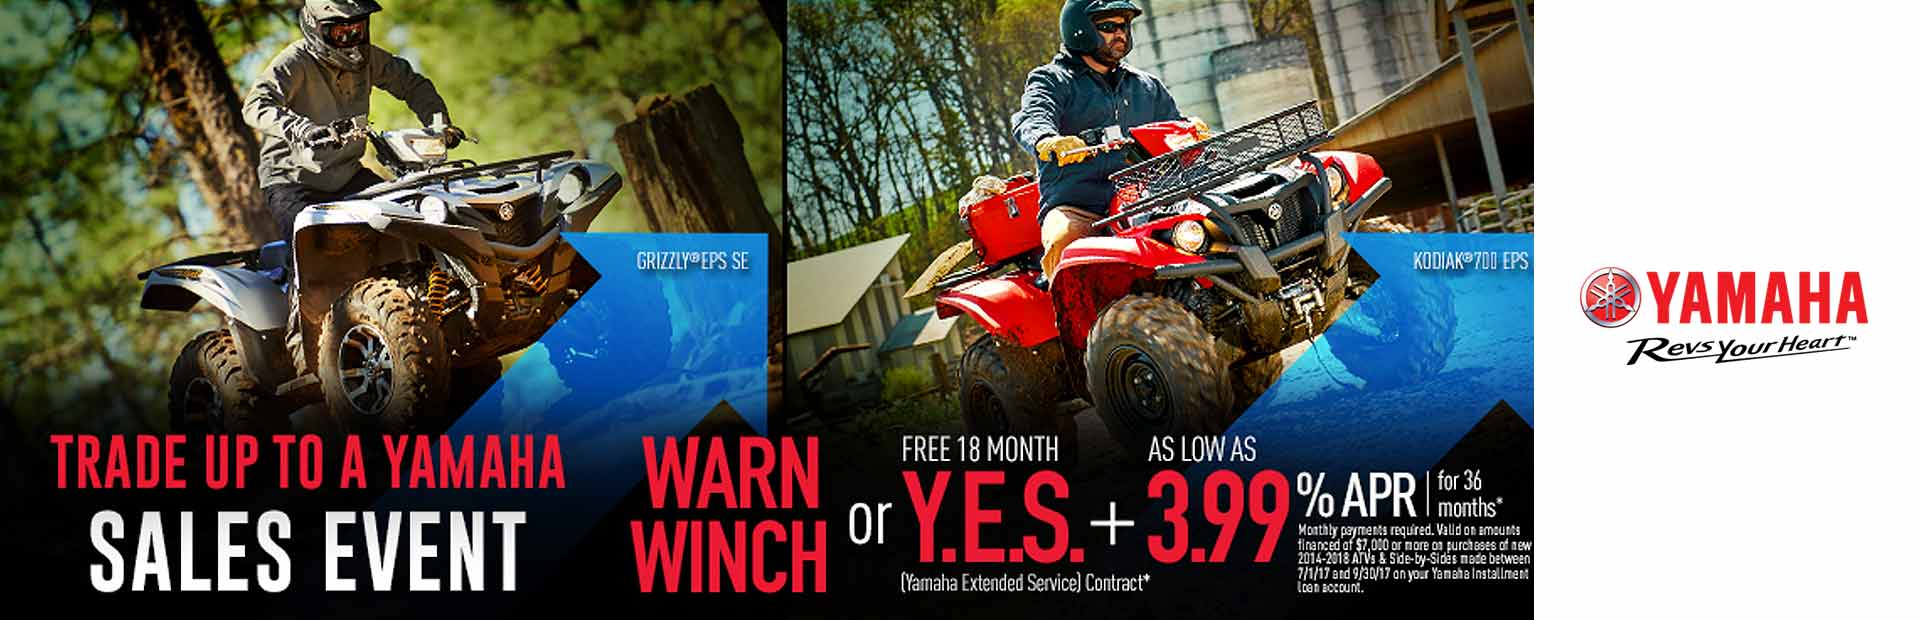 Warn Winch or Y.E.S. + 3.99% APR For 36 Months*